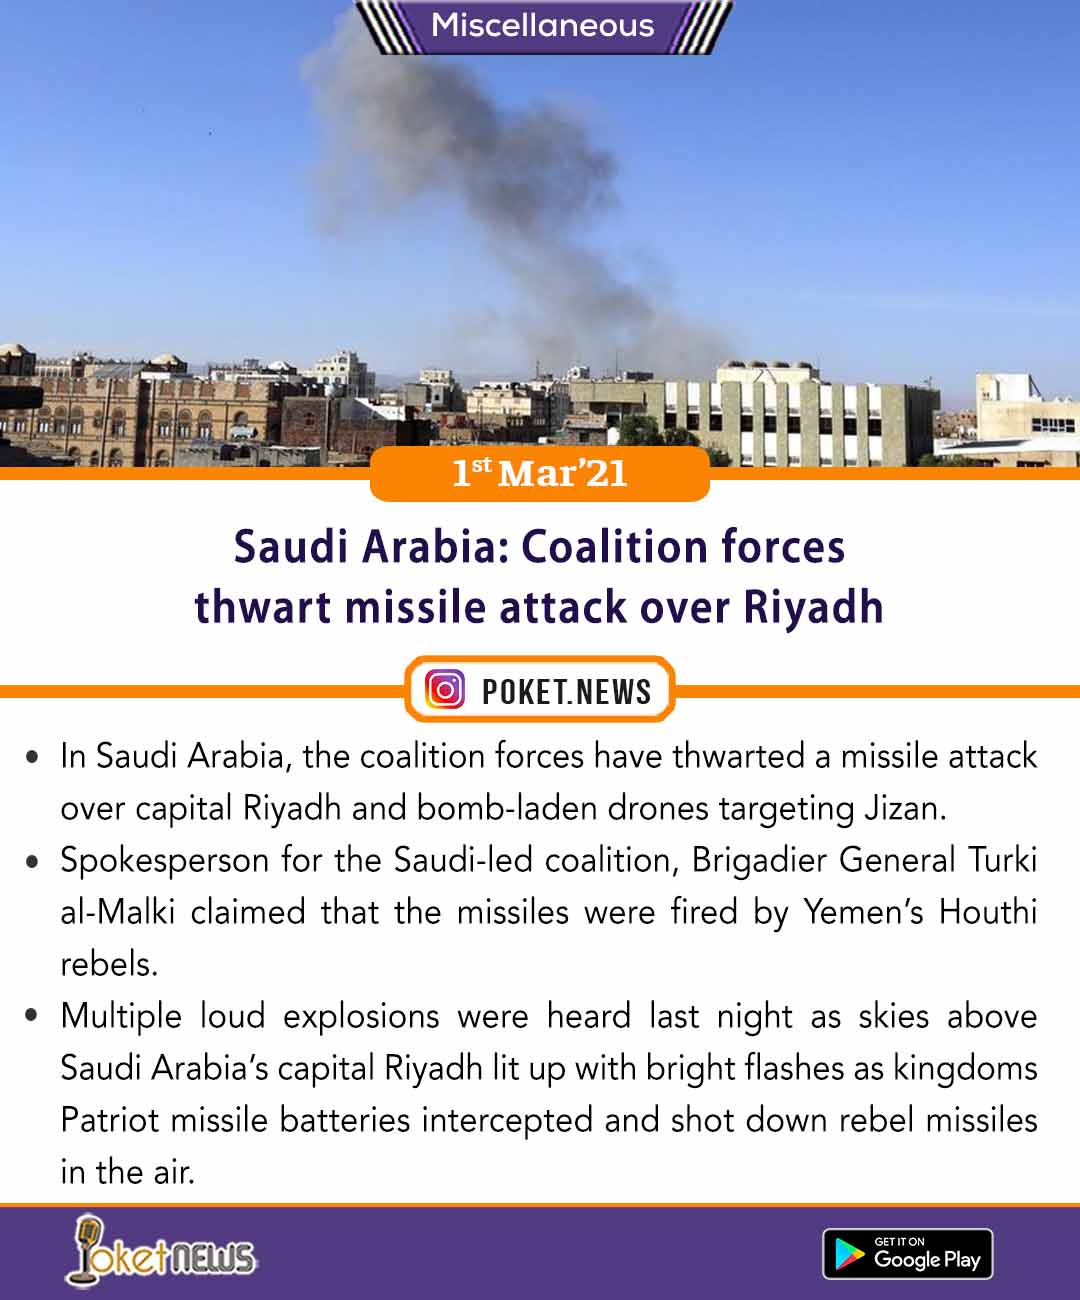 Saudi Arabia: Coalition forces thwart missile attack over Riyadh